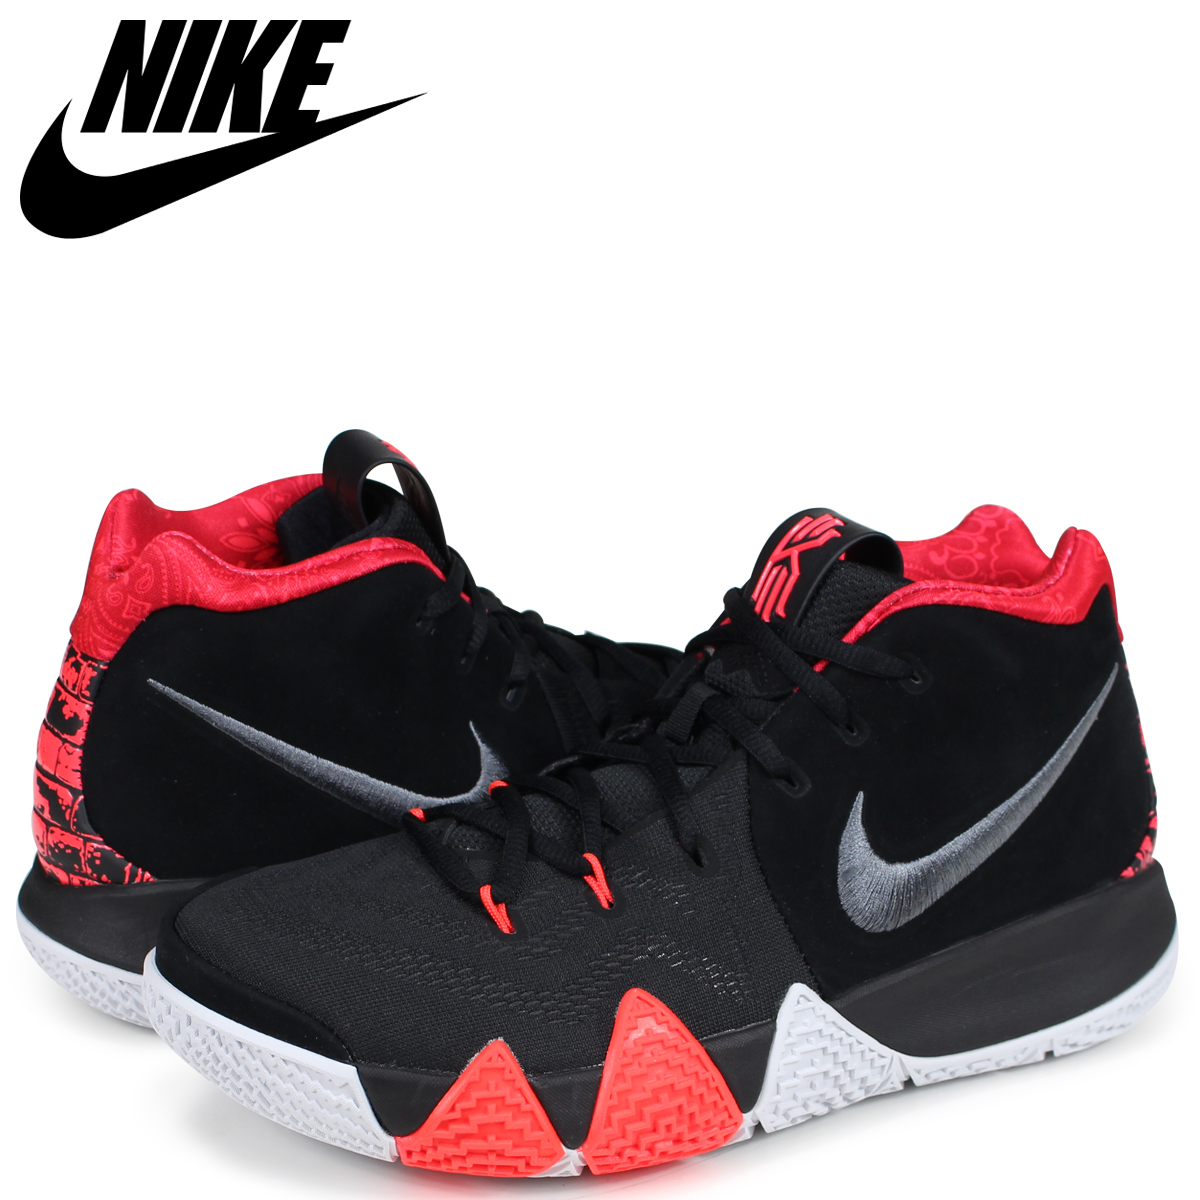 NIKE ナイキ カイリー4 スニーカー メンズ KYRIE 4 EP 41 FOR THE AGES 943807-005 ブラック 黒 【zzi】